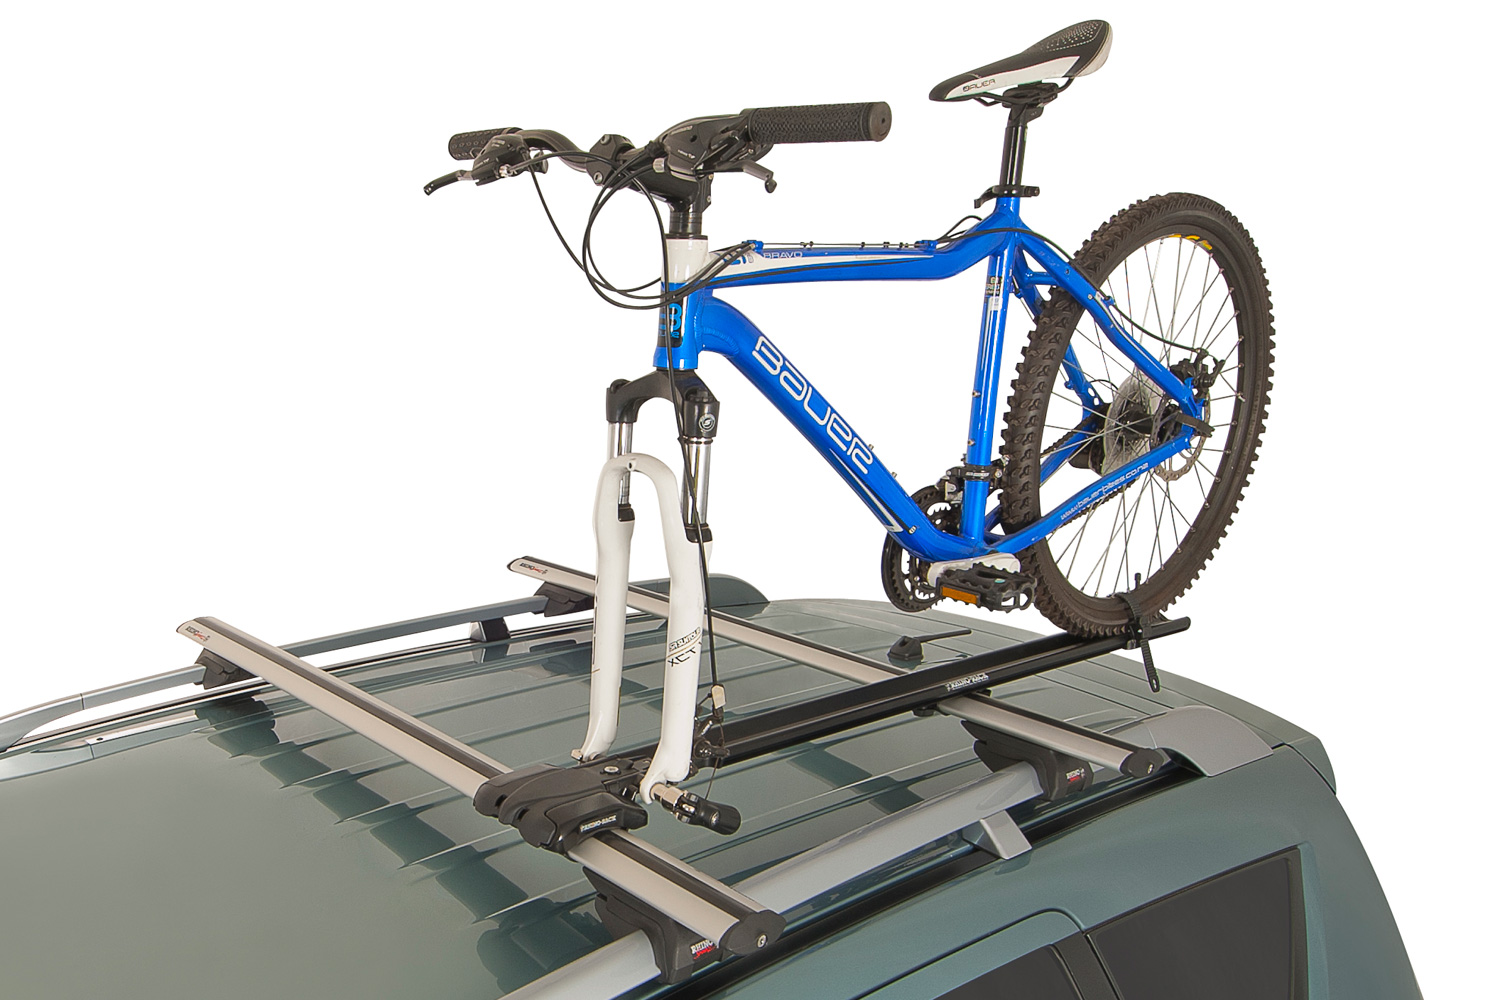 Rhino Rack Mountaintrail Bike Carrier Roof Bicycle Rack